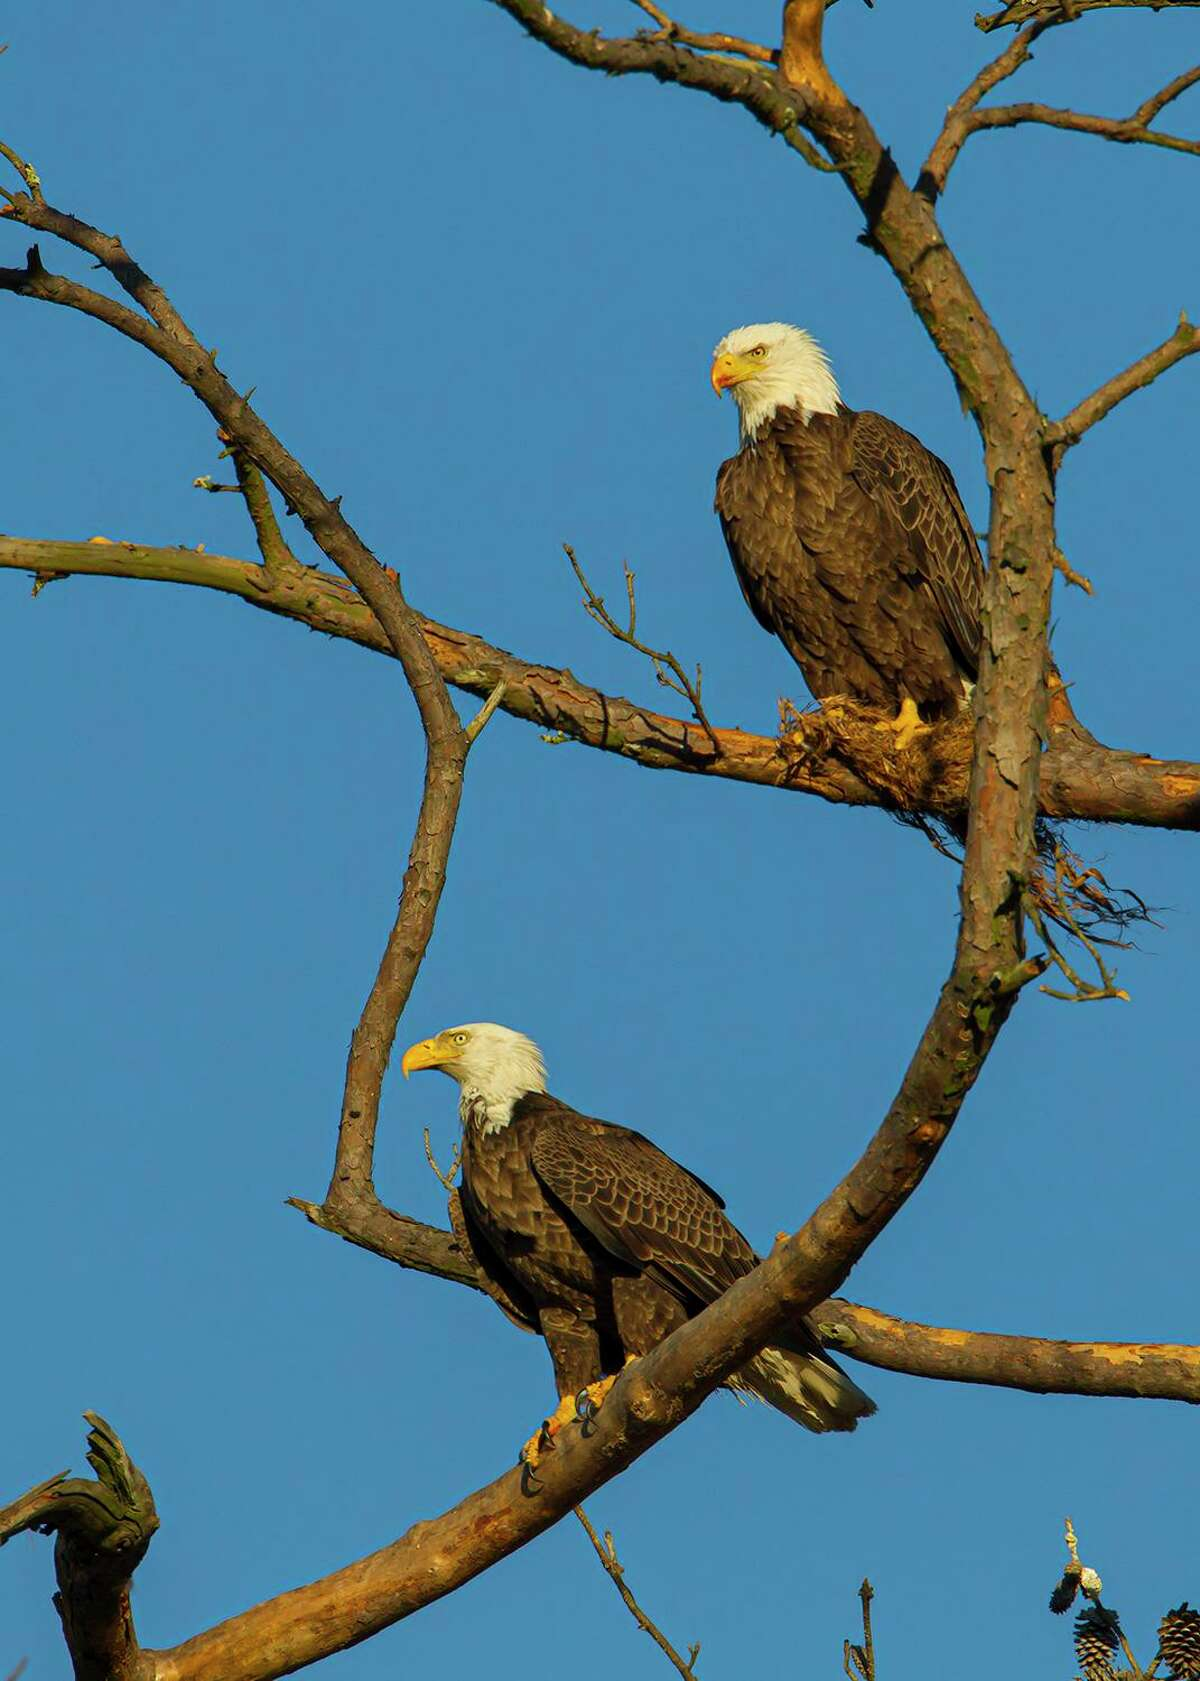 """Houston Audubon Society seeks your nomination for the """"Bird of Houston."""" Should it be the bald eagle in honor of the Apollo 11 moon landing? Photo Credit: Kathy Adams Clark Restricted use."""